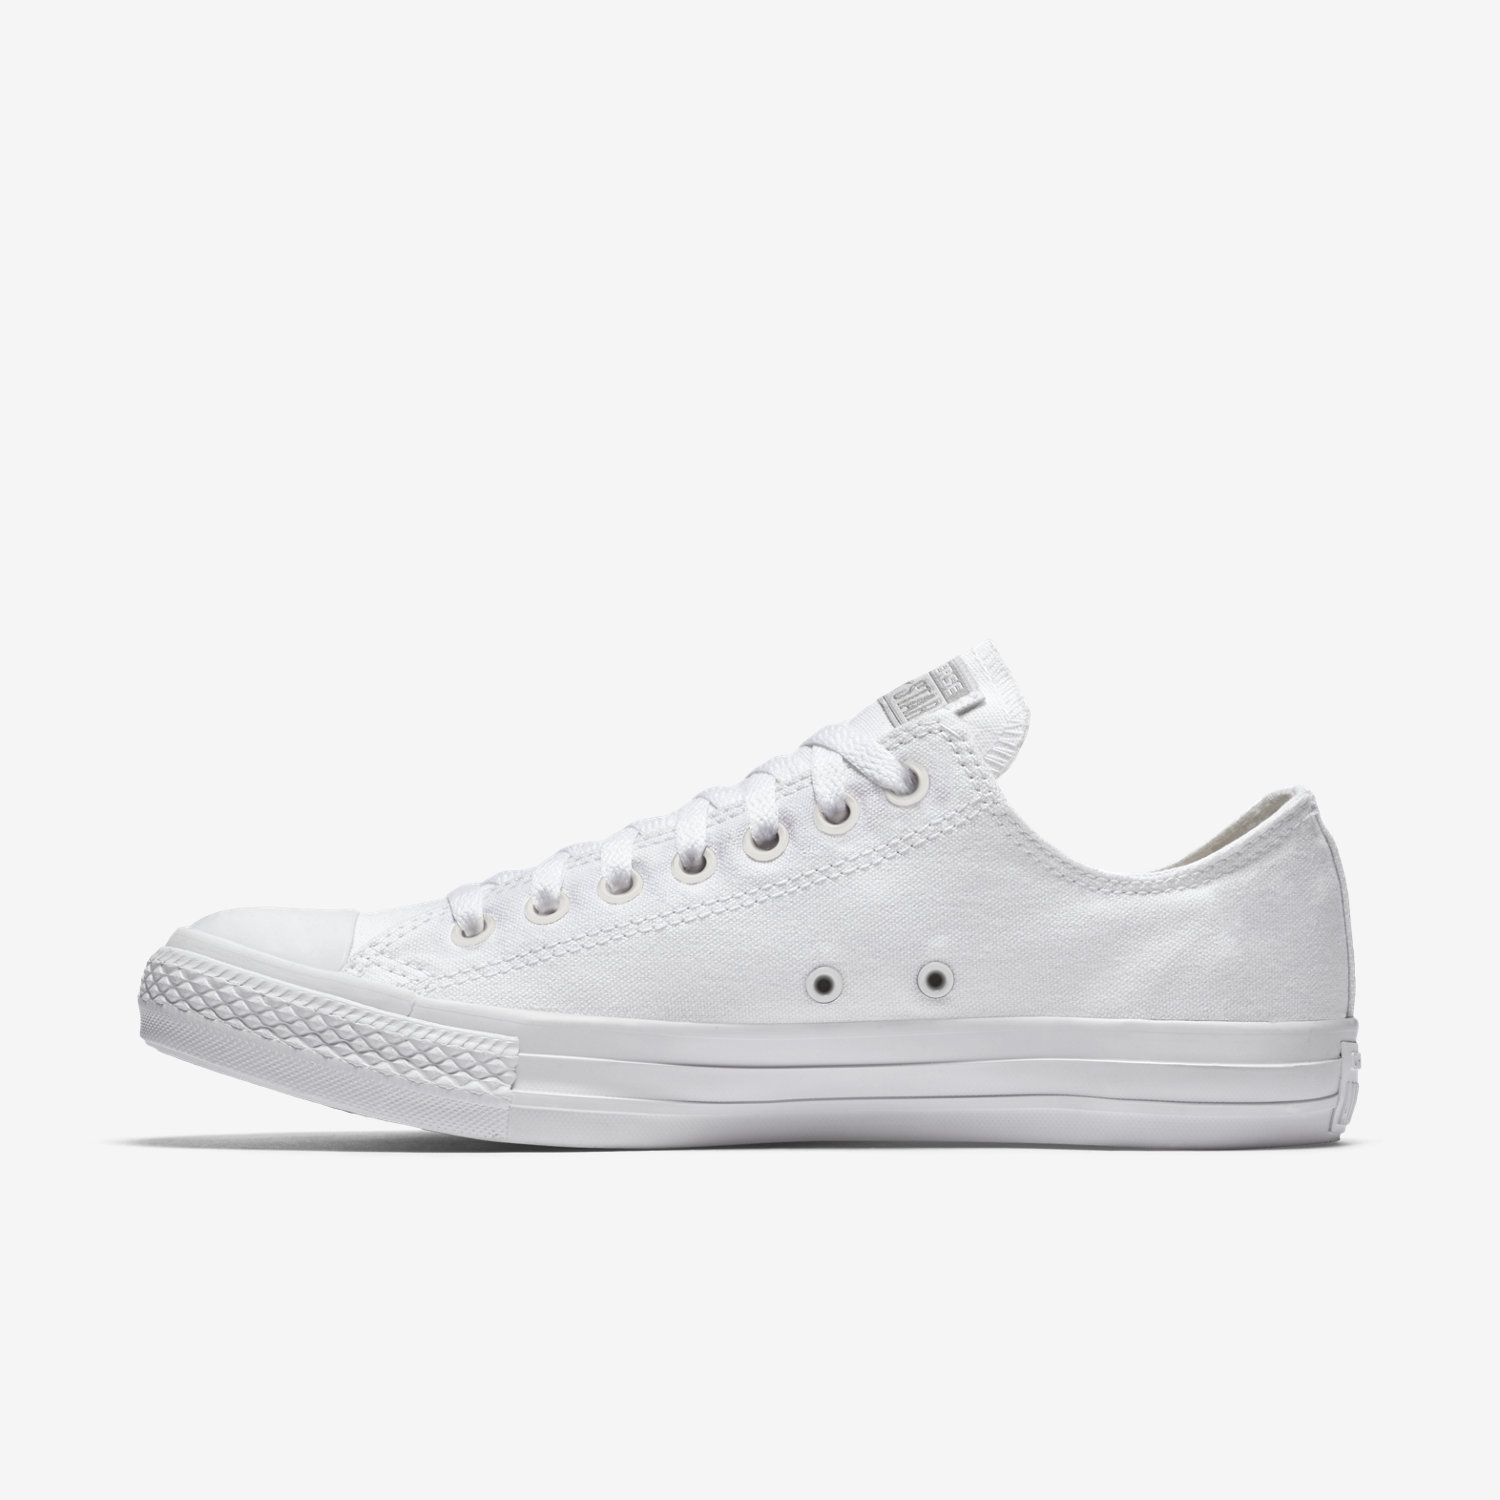 nike air force 1 low top white converse